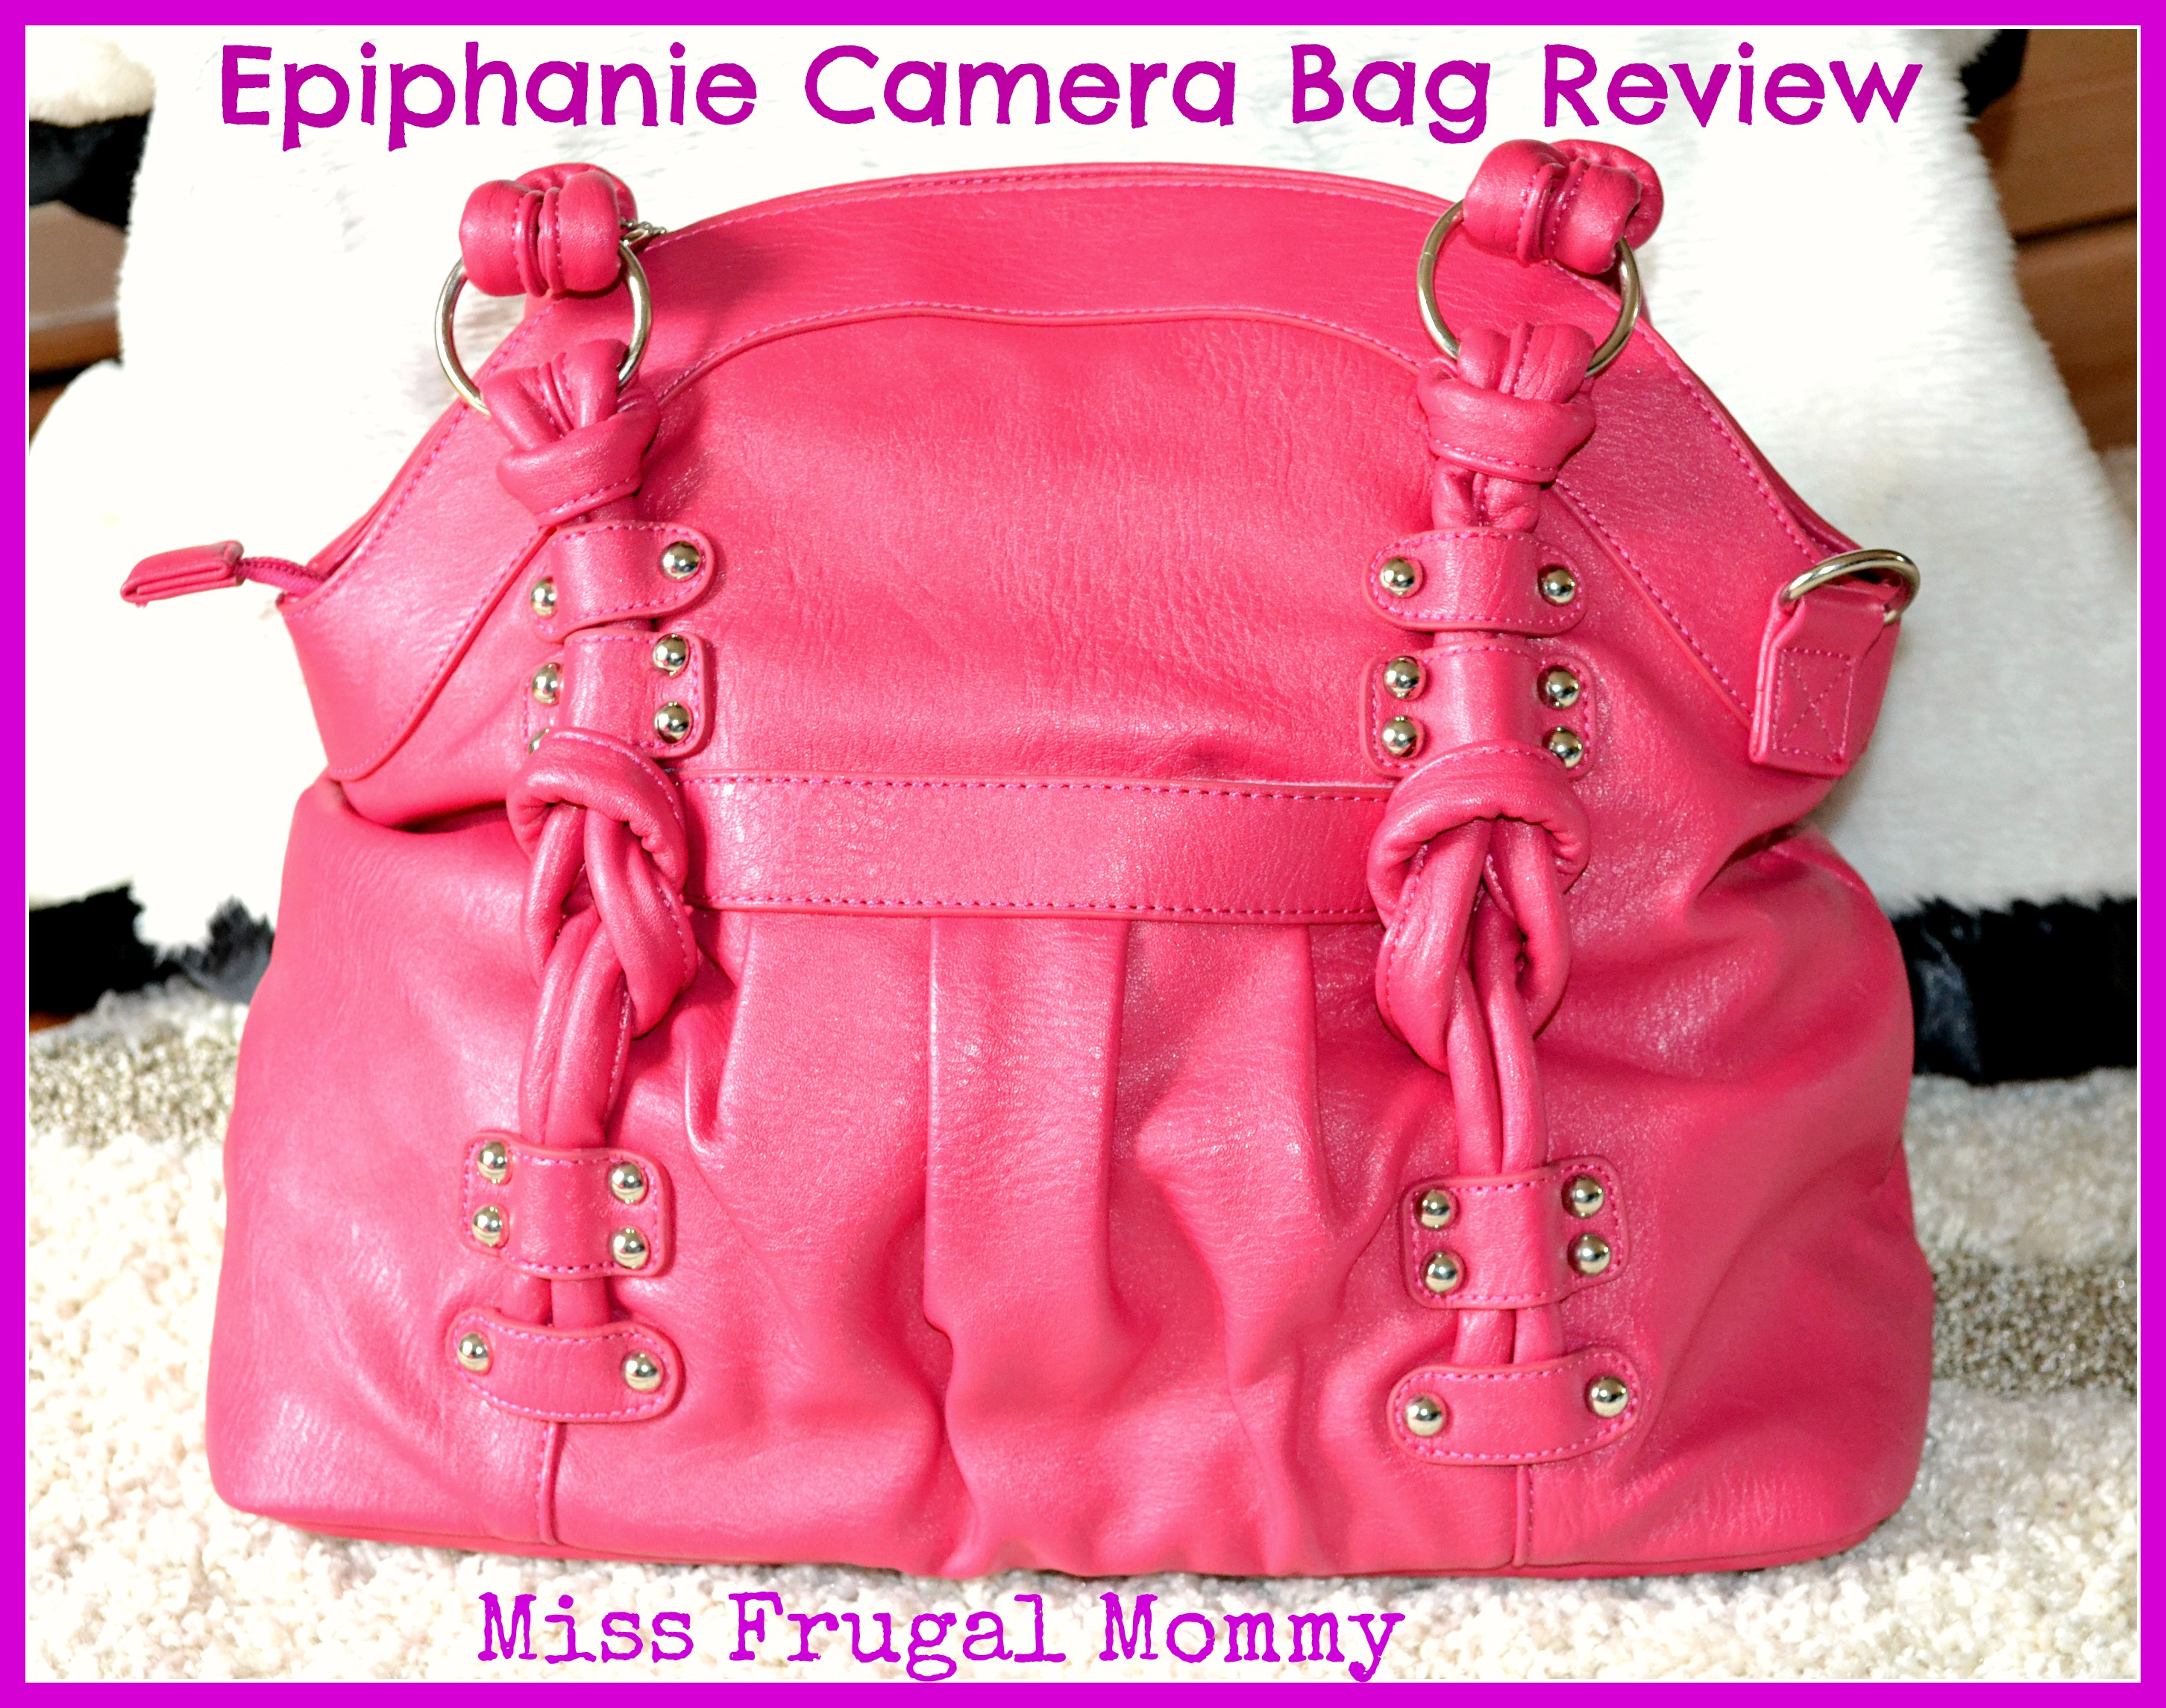 Epiphanie Camera Bag Review